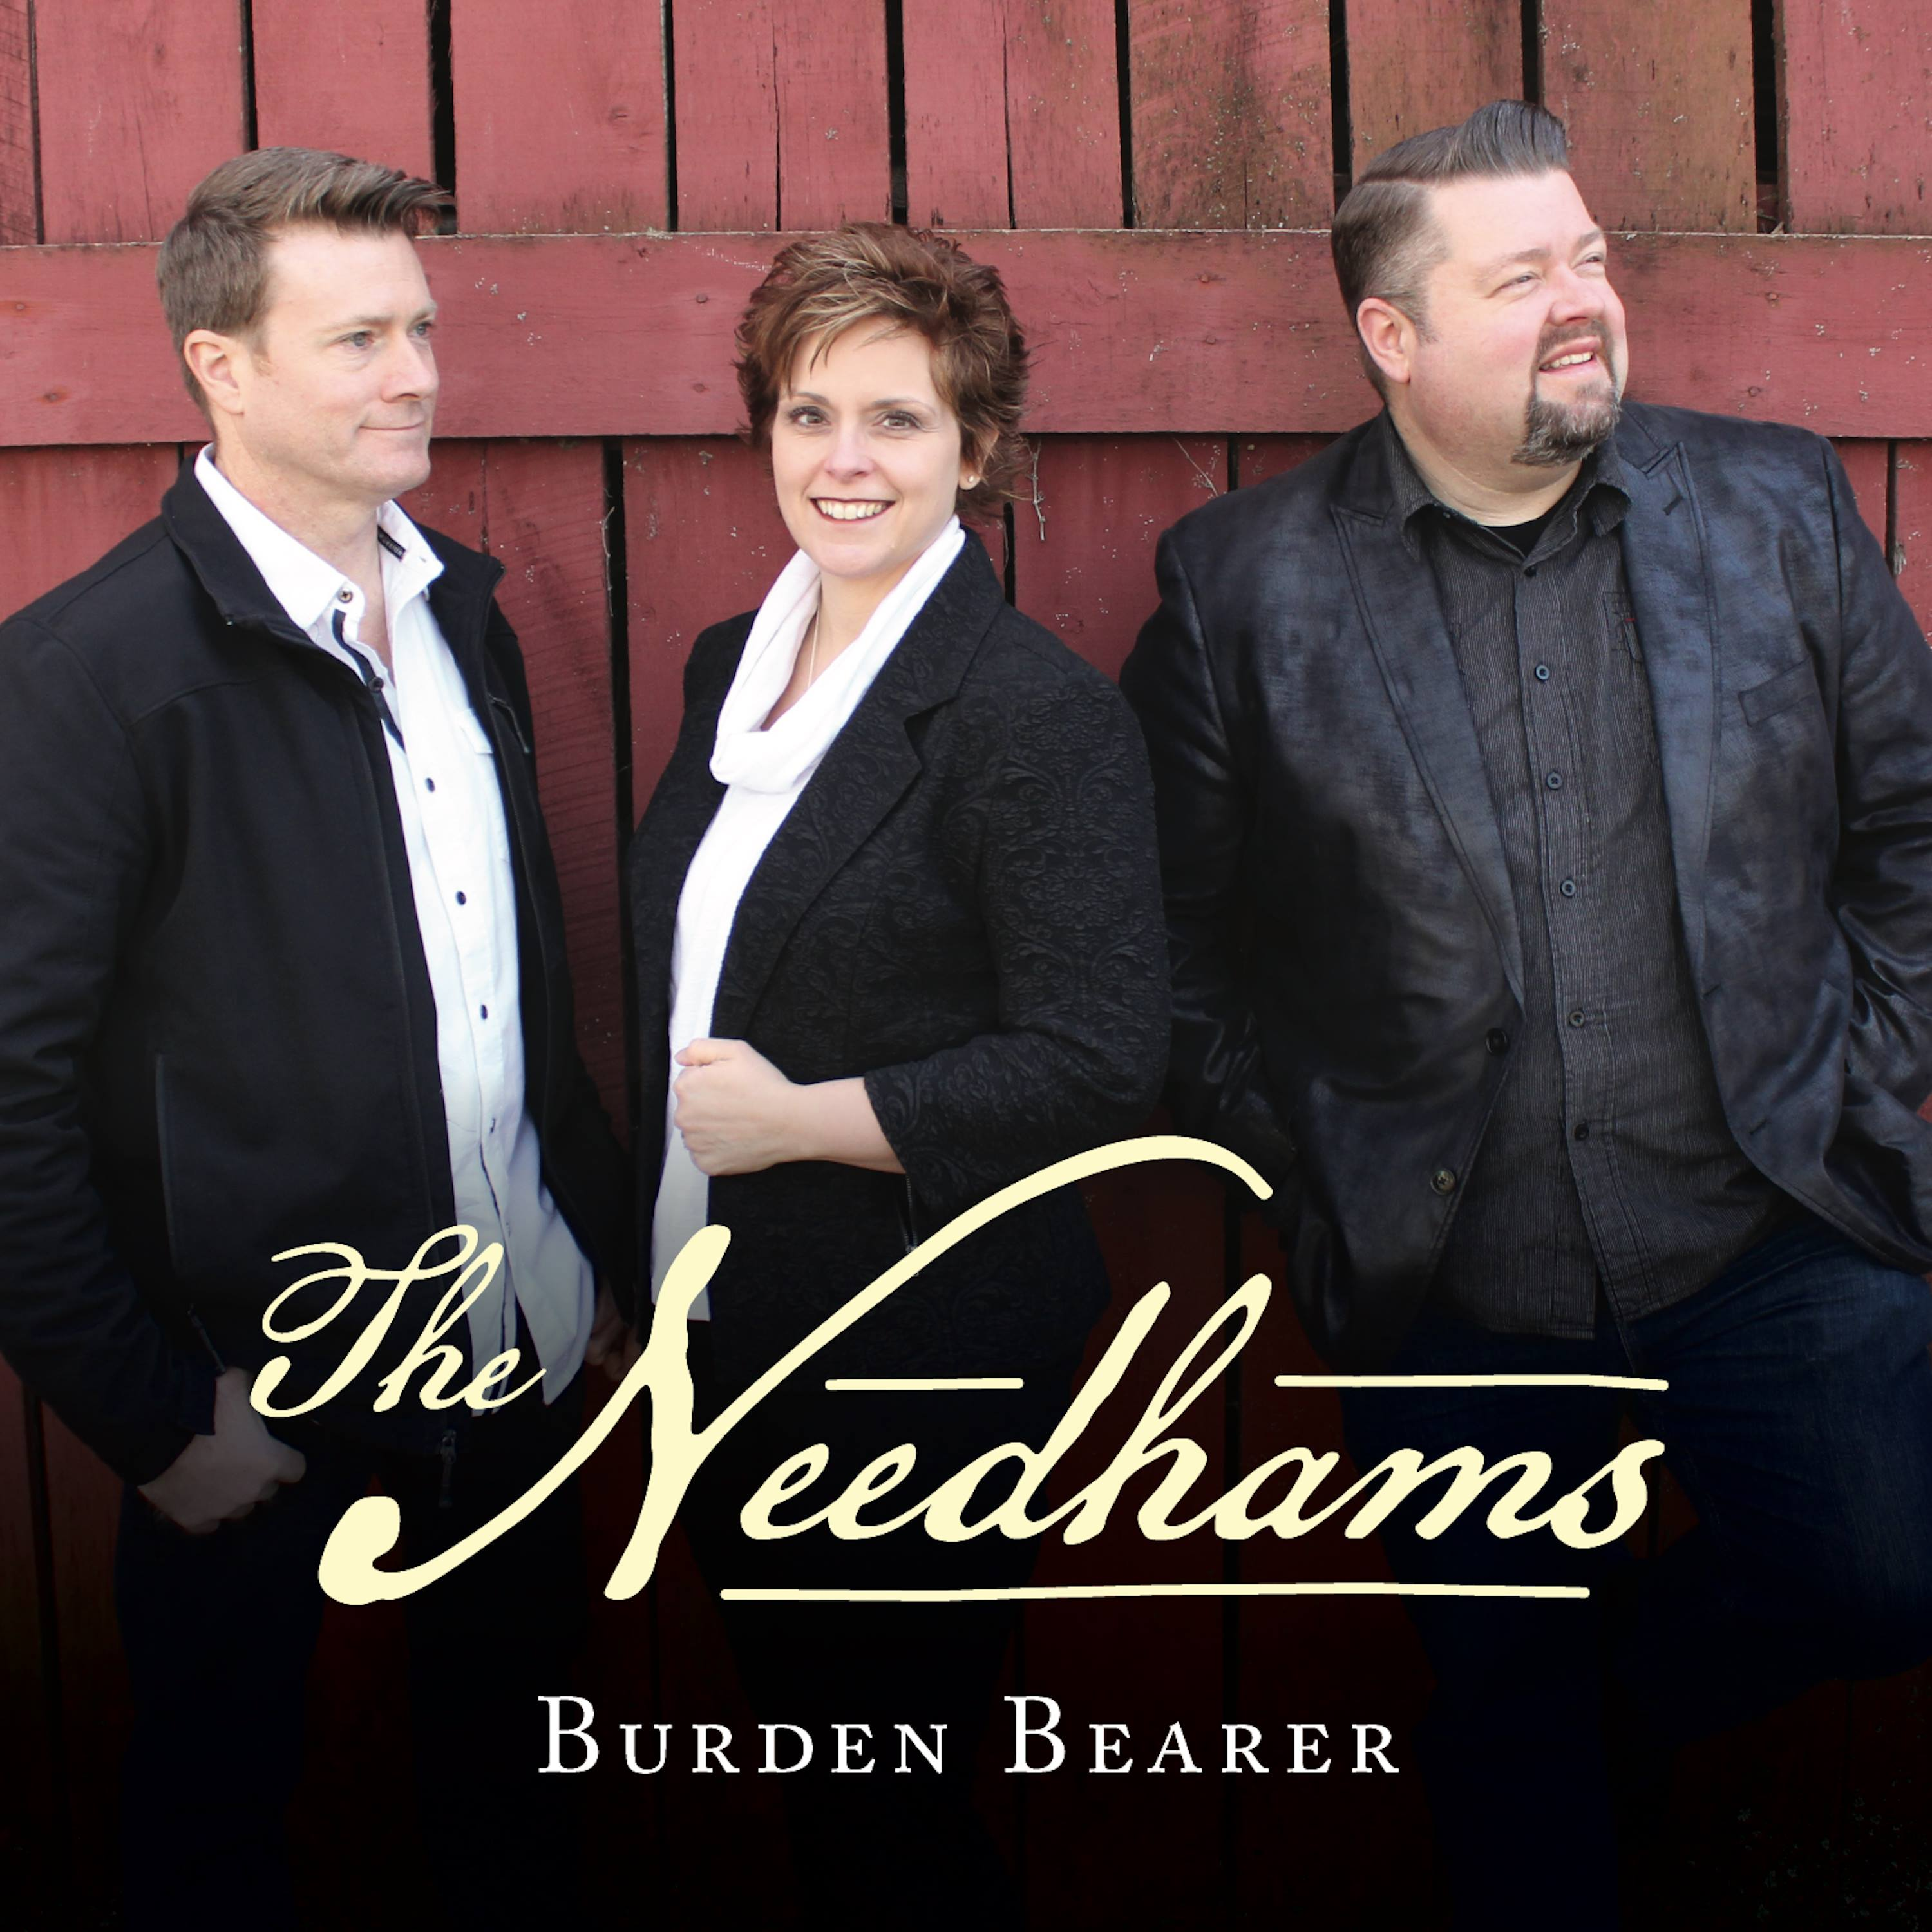 The Needhams announce the release of their brand Album